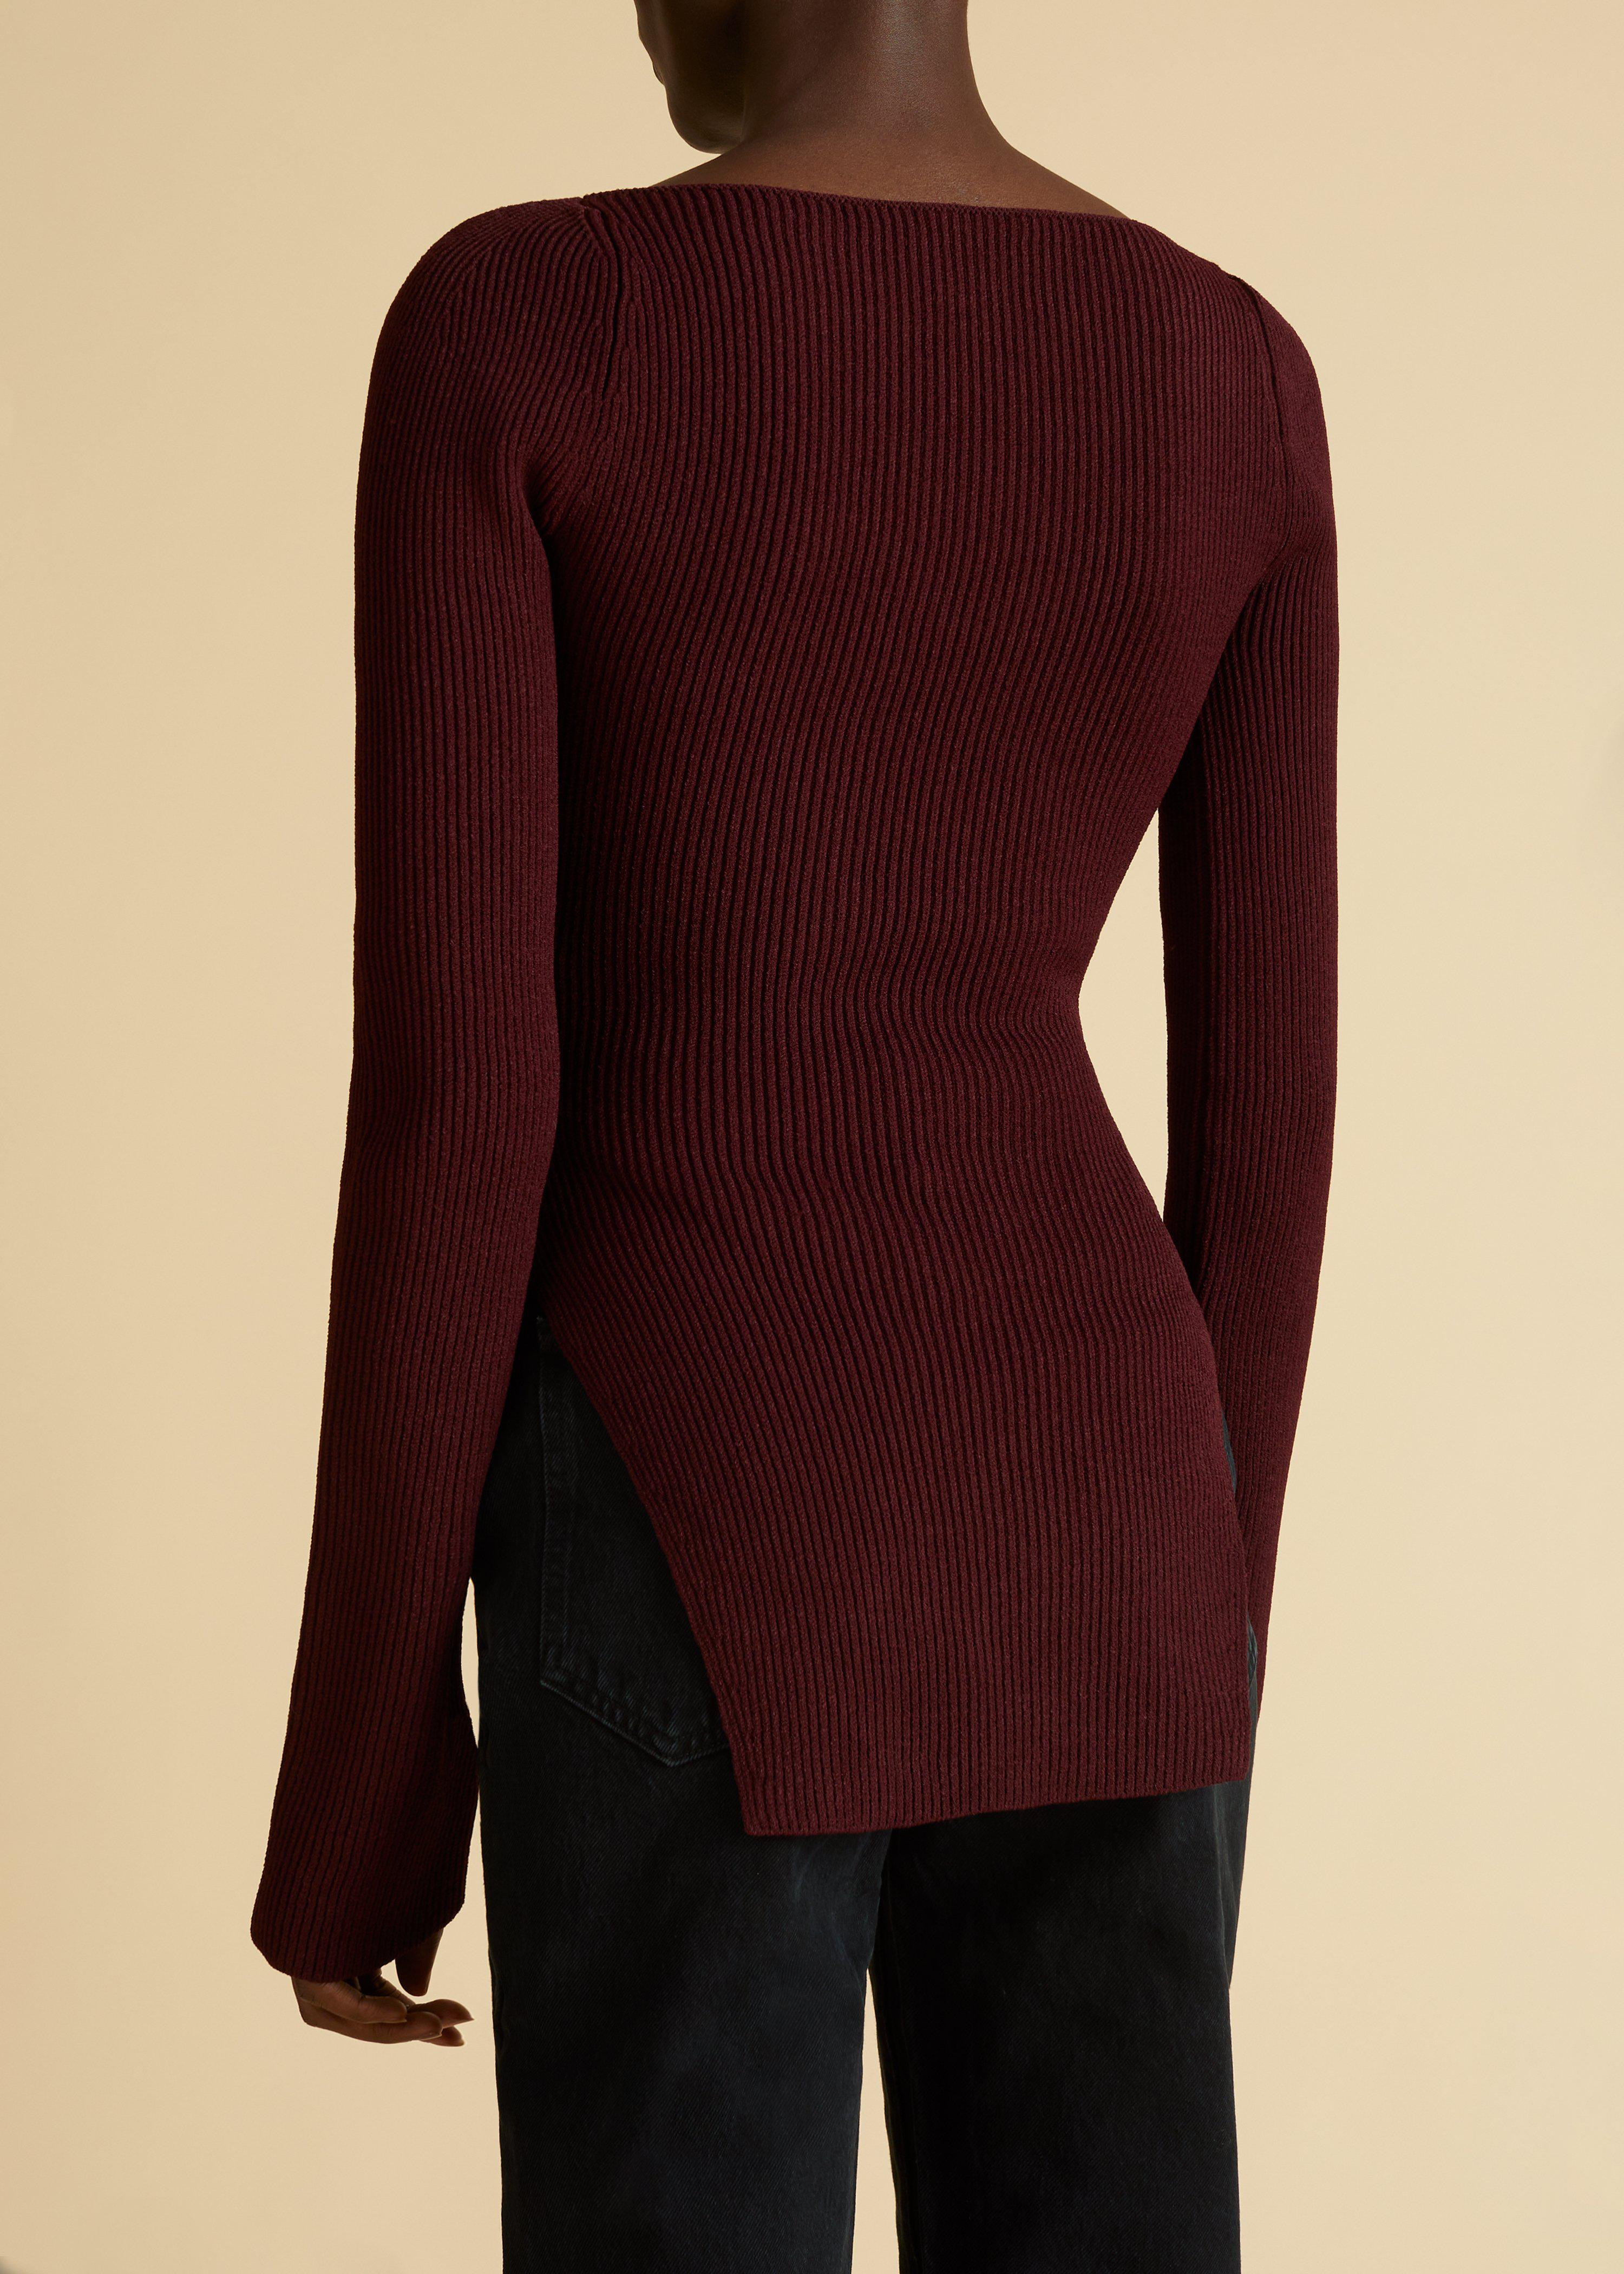 The Maddy Top in Oxblood 2